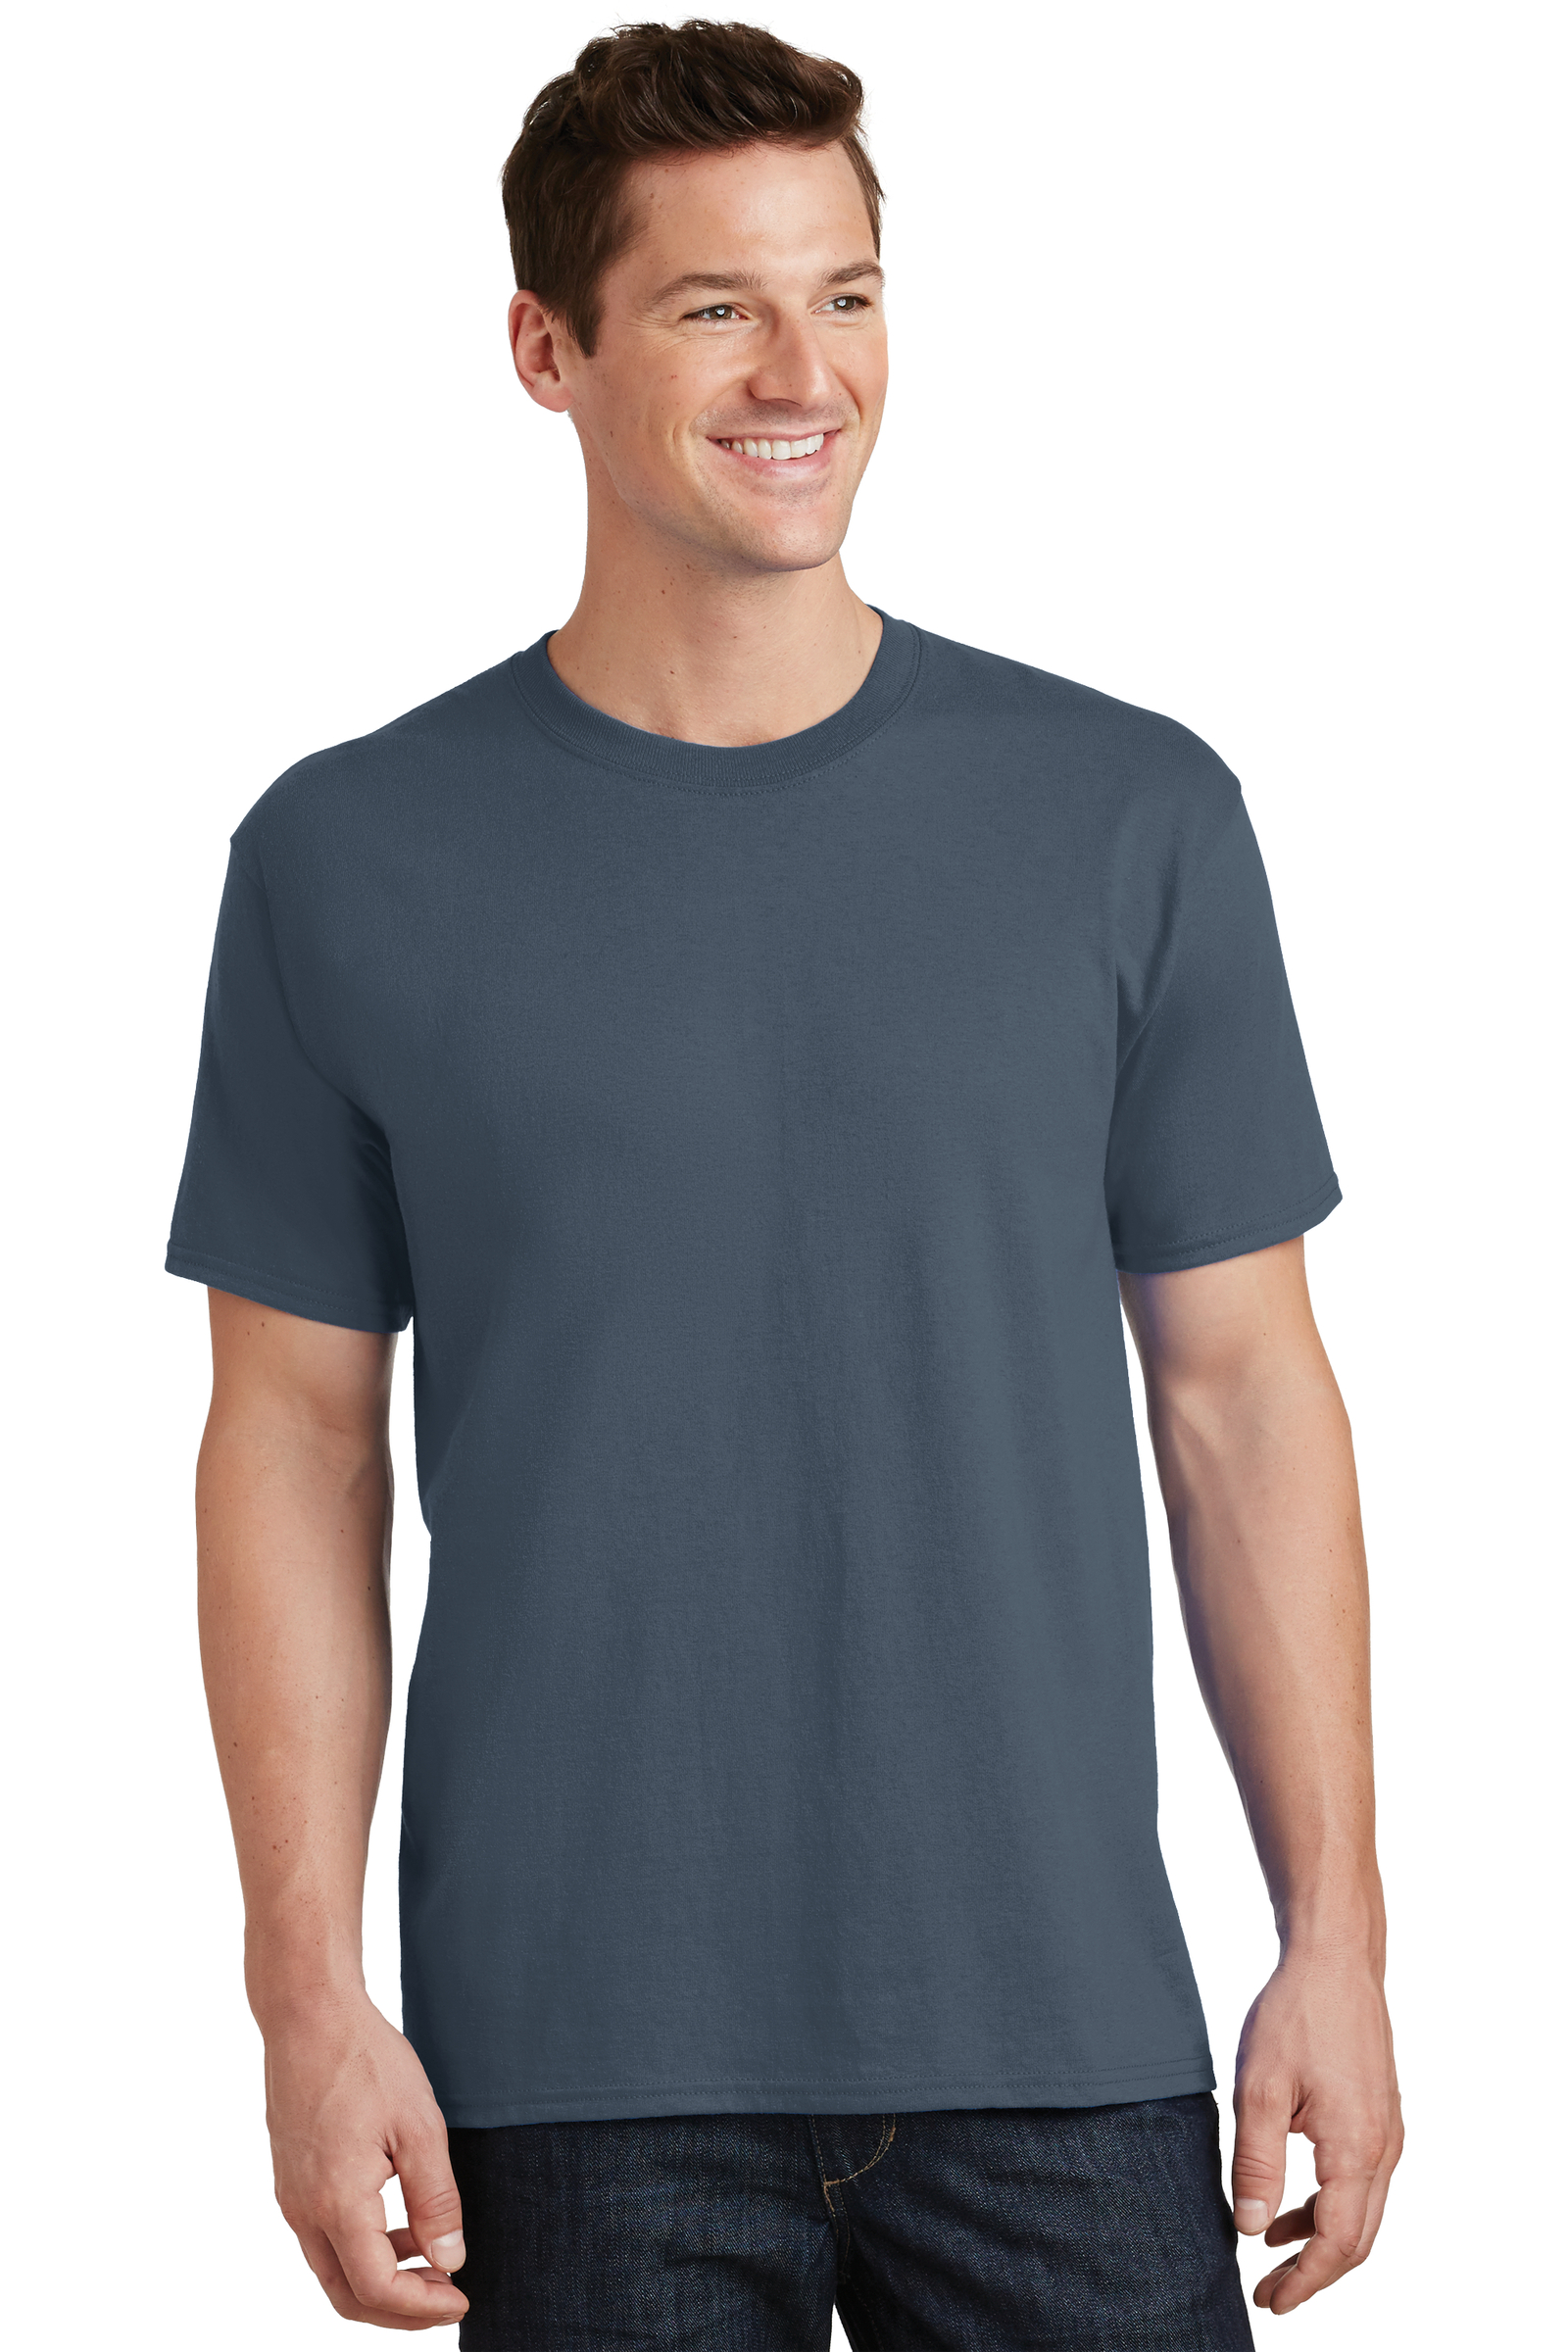 Port & Company Embroidered Men's Core Cotton Tee